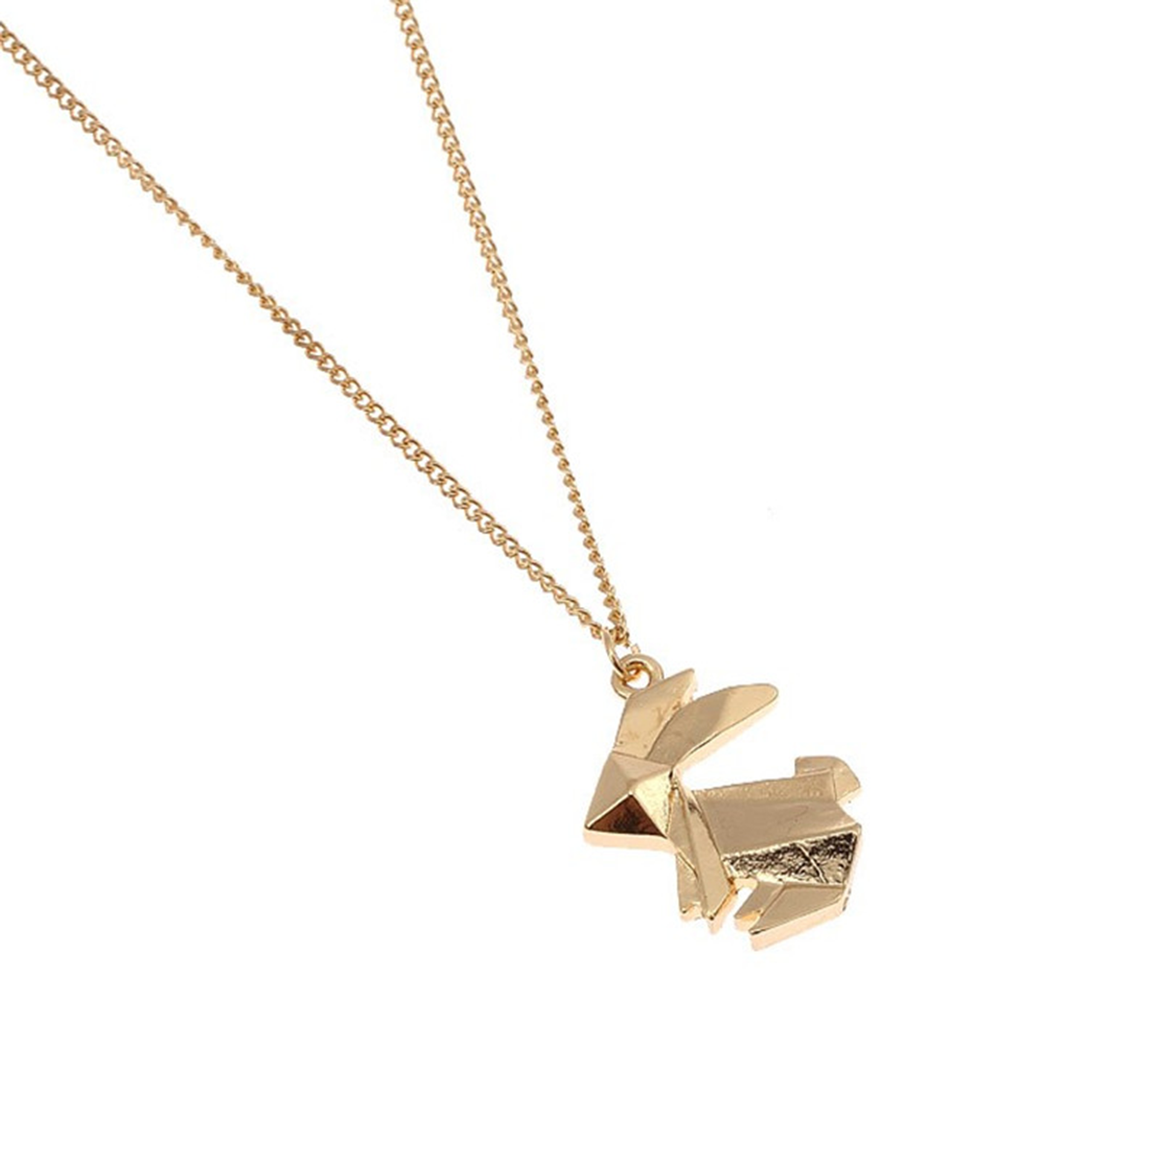 Origami Rabbit Necklace